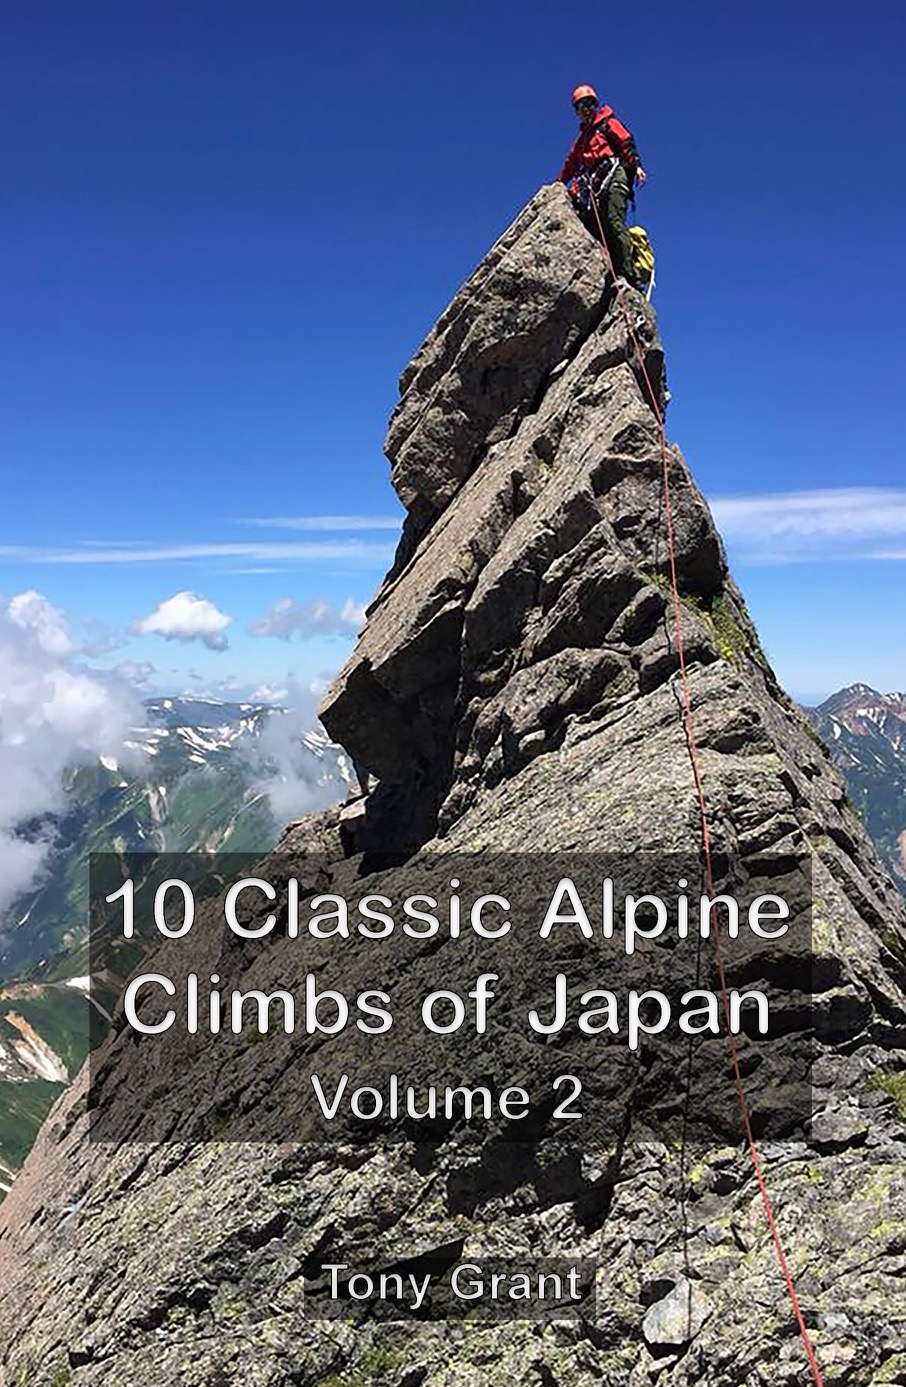 10 Classic Alpine Climbs of Japan (Volume 2) - OUT NOW